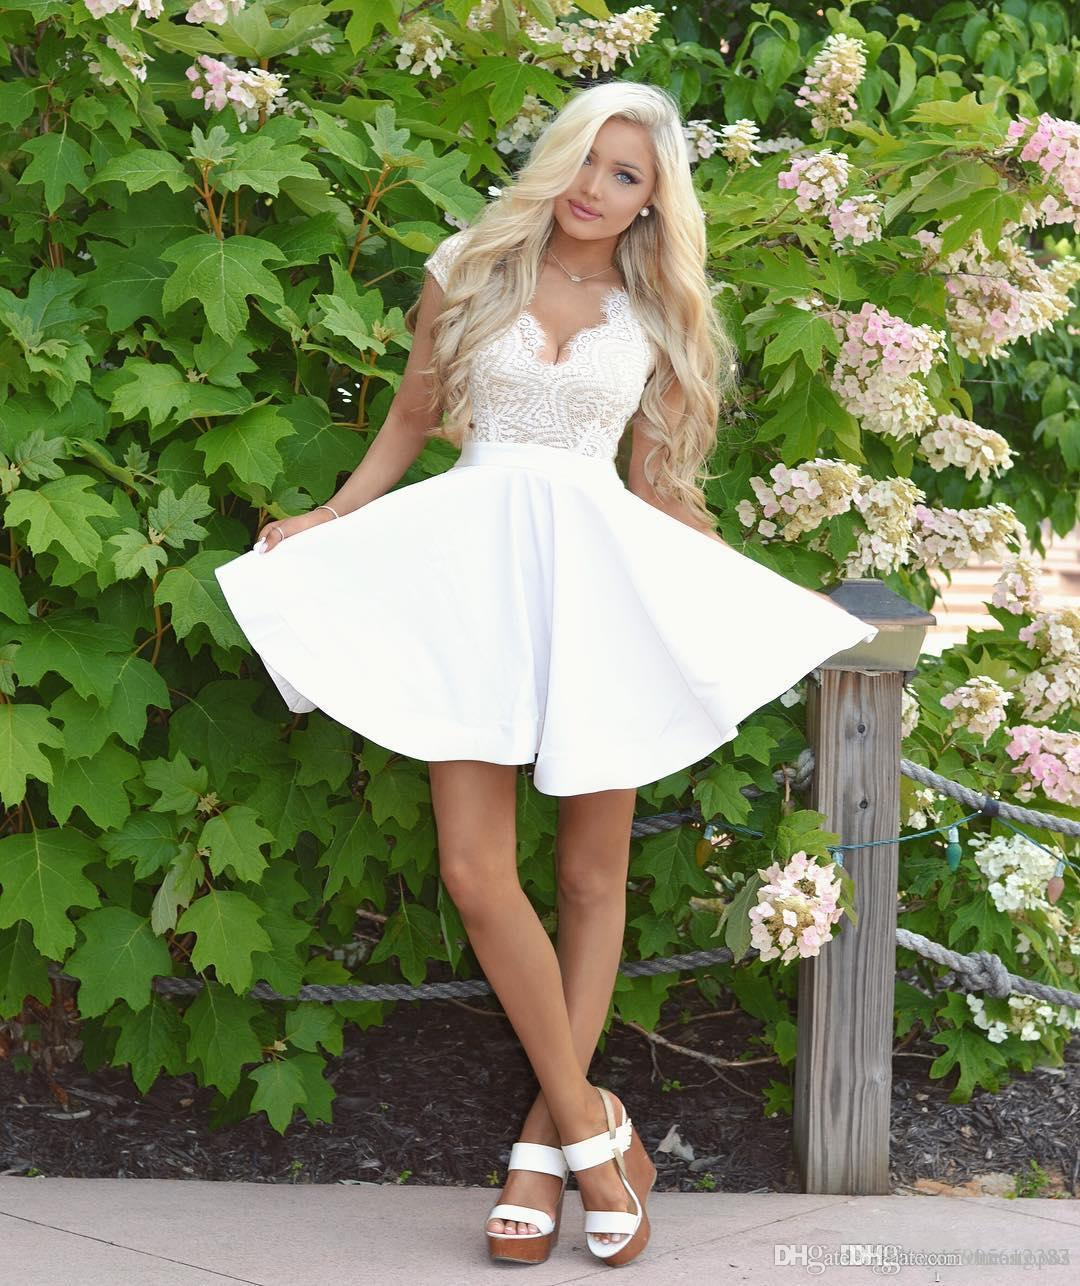 75e36966284 2019 New White Short Cocktail Dresses Lace V Neck Homecoming Dress Sexy  Open Back Graduation Party Gowns Mini Prom Dress 313 Shop Cocktail Dresses  Online ...